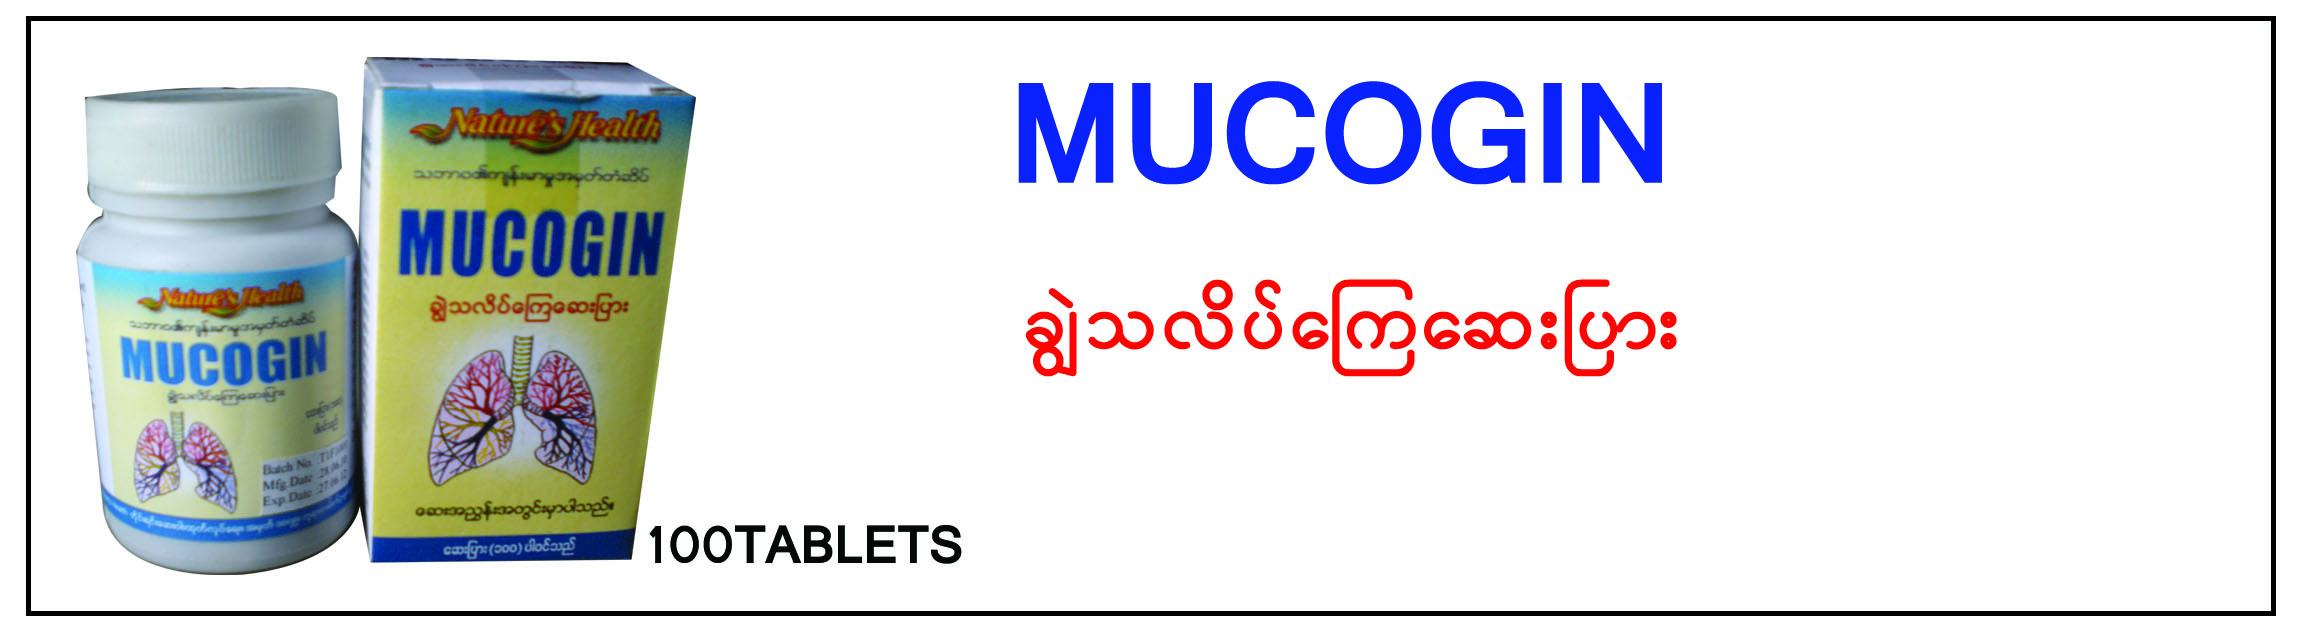 Mucogin Tablet